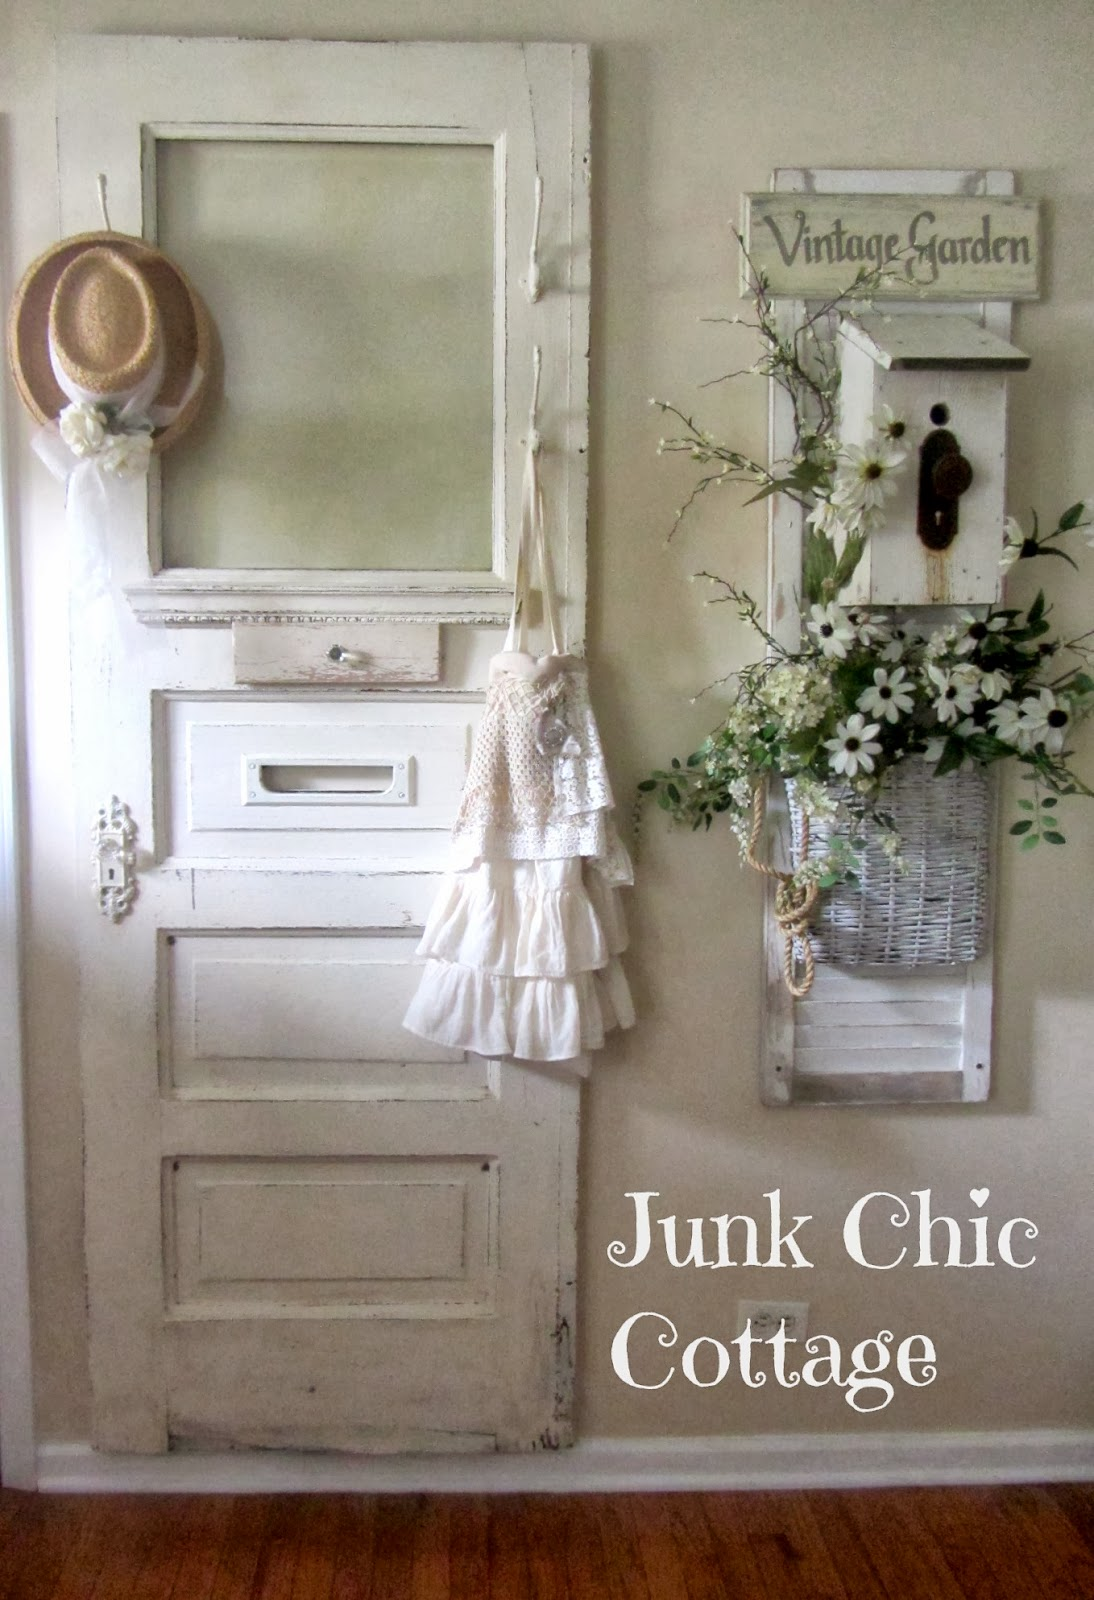 Junk chic cottage entertainment cabinet and entry way - Porte shabby chic ...